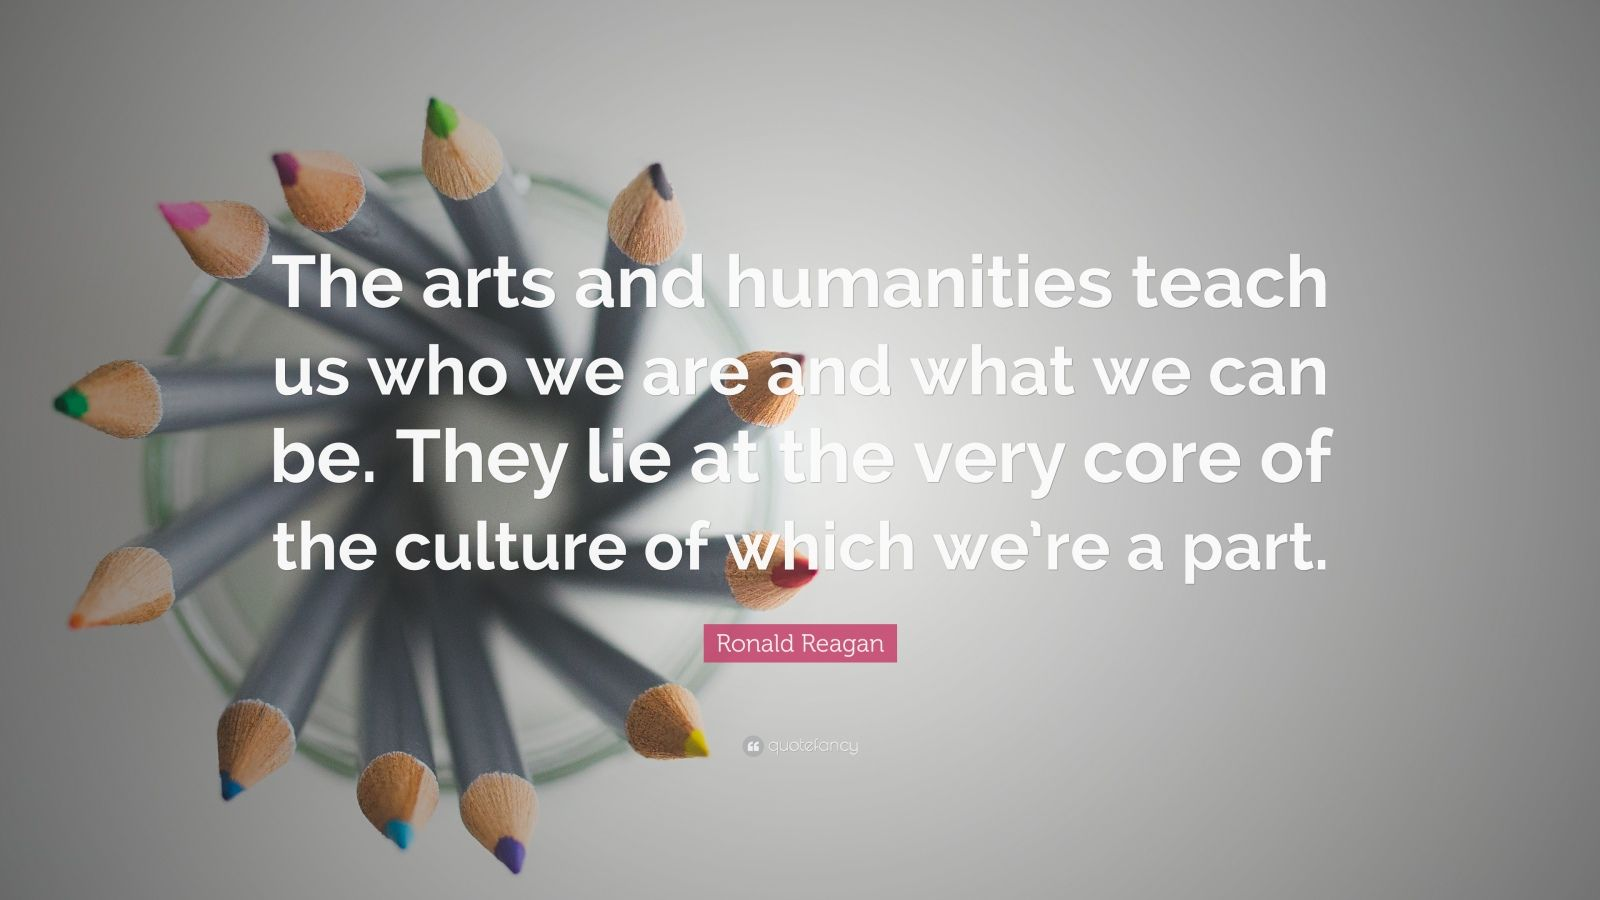 """Ronald Reagan Quote: """"The arts and humanities teach us who we are and what we can be. They lie at the very core of the culture of which we're a part."""""""